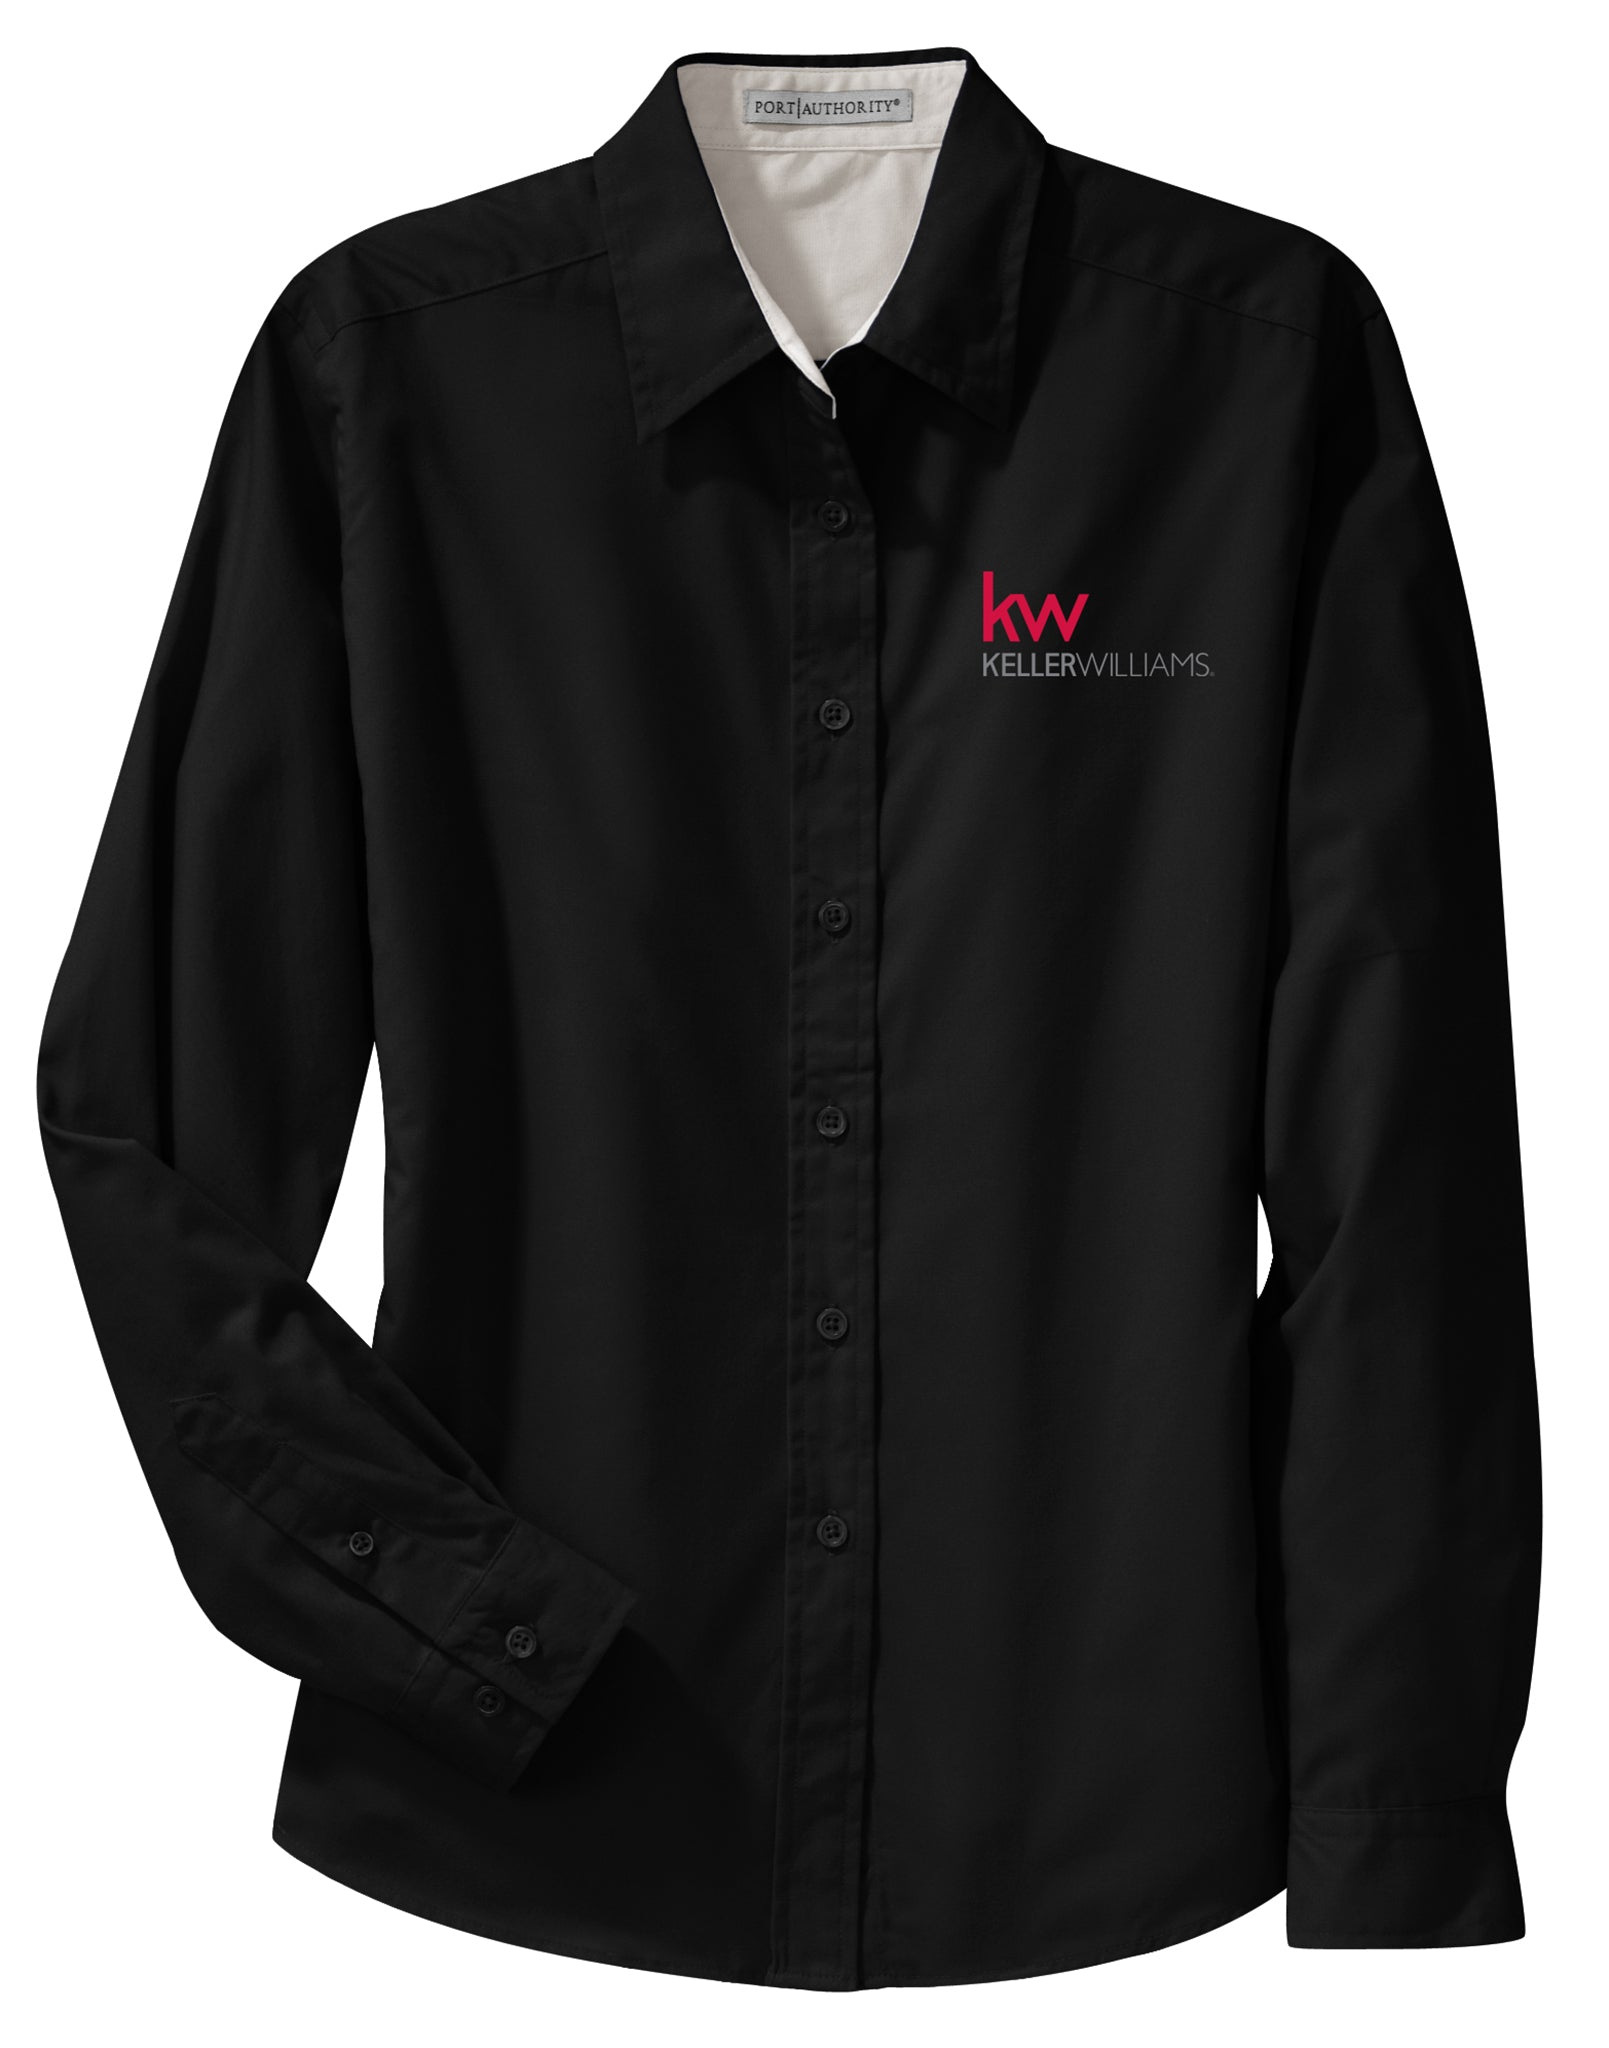 long sleeve black button down with red and white Keller Williams logo in emboidery